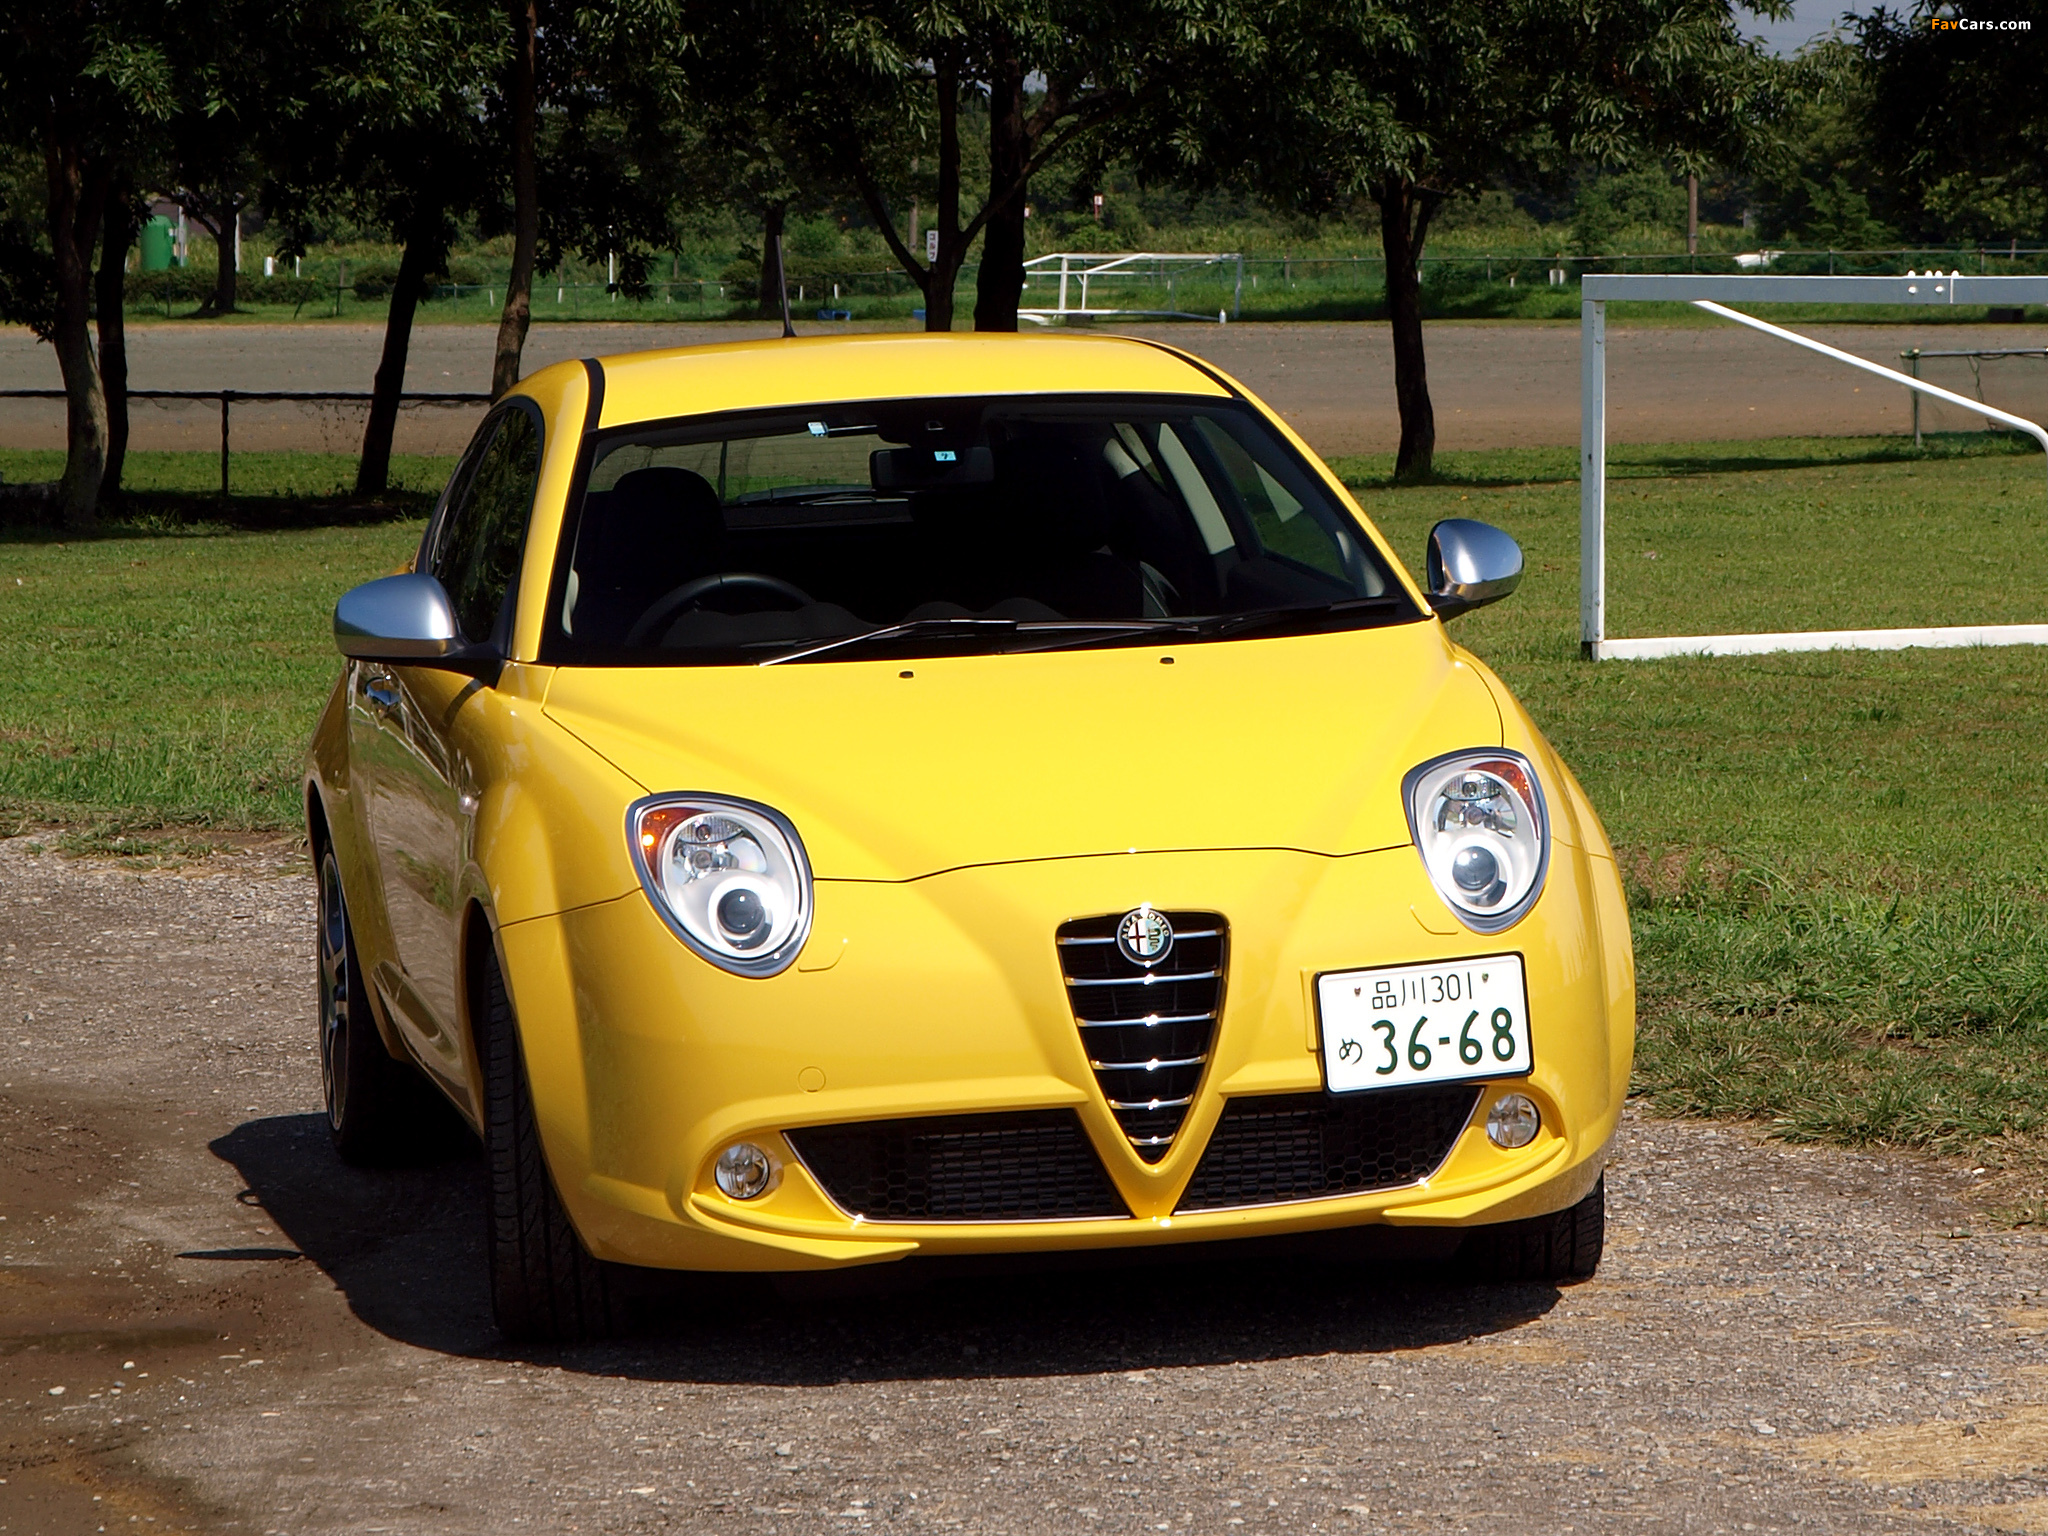 alfa romeo mito imola 955 2009 wallpapers 2048x1536. Black Bedroom Furniture Sets. Home Design Ideas